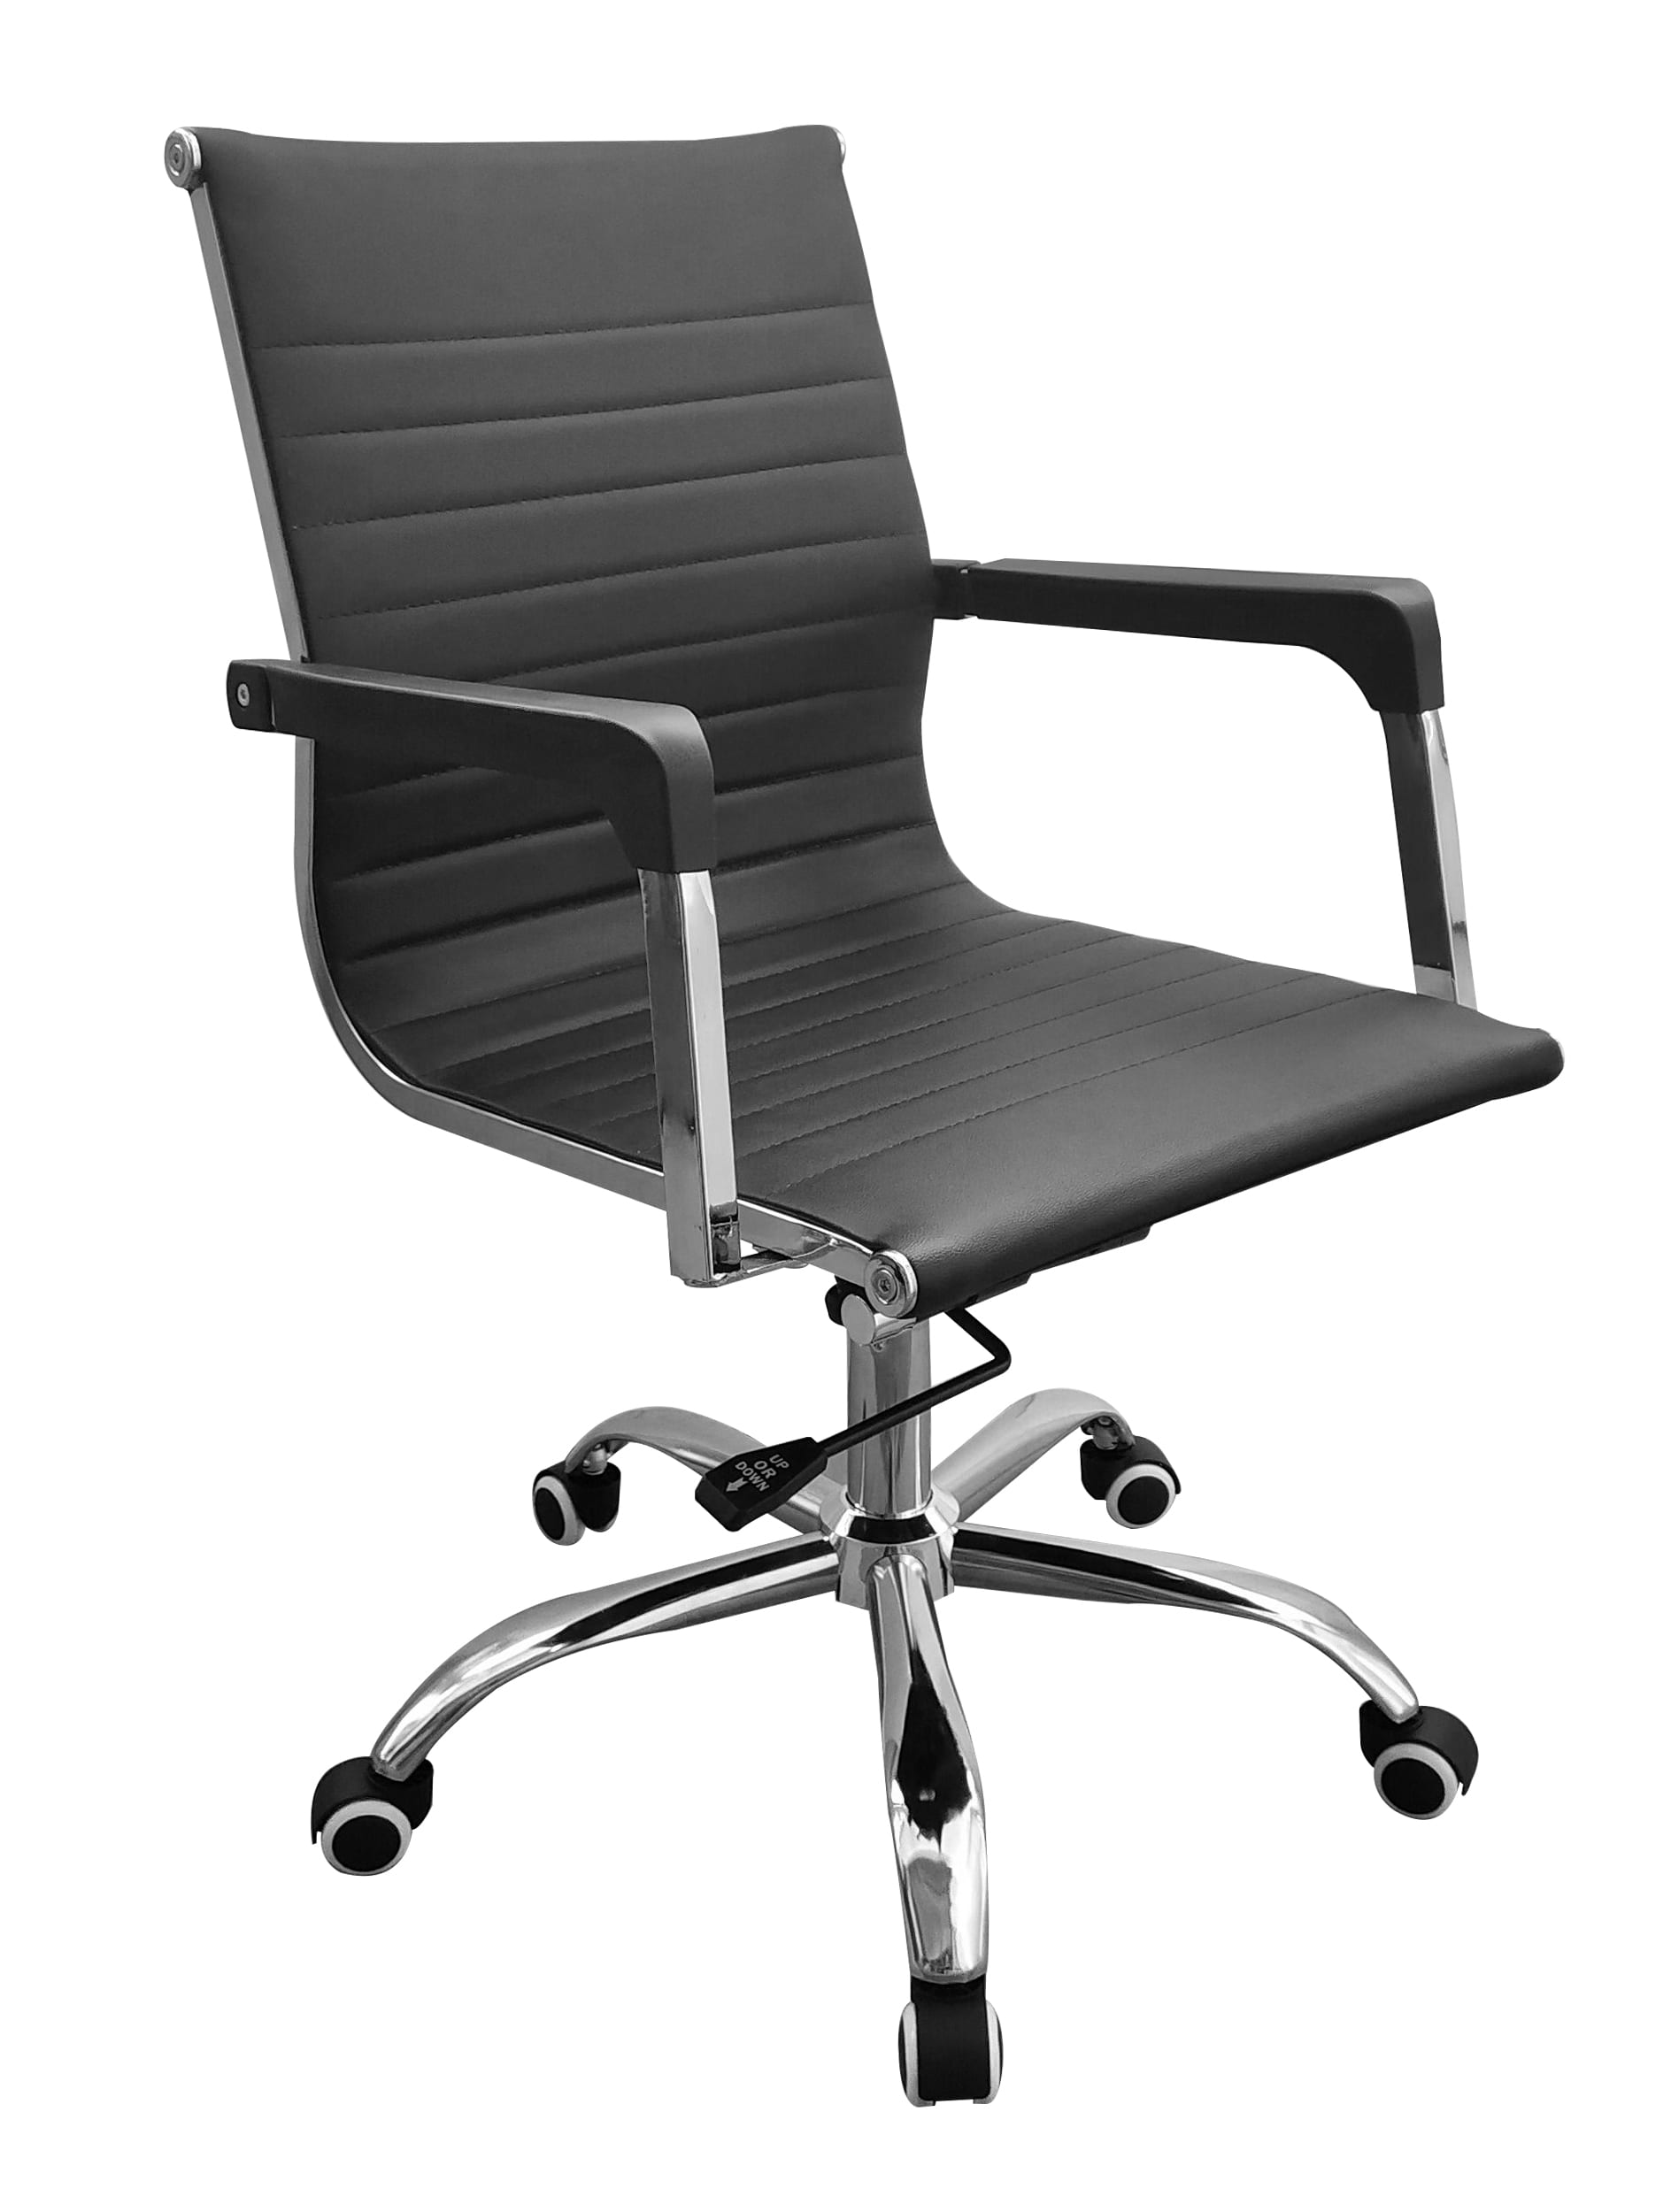 Lust home office chair with contour back in black faux leather with chrome base